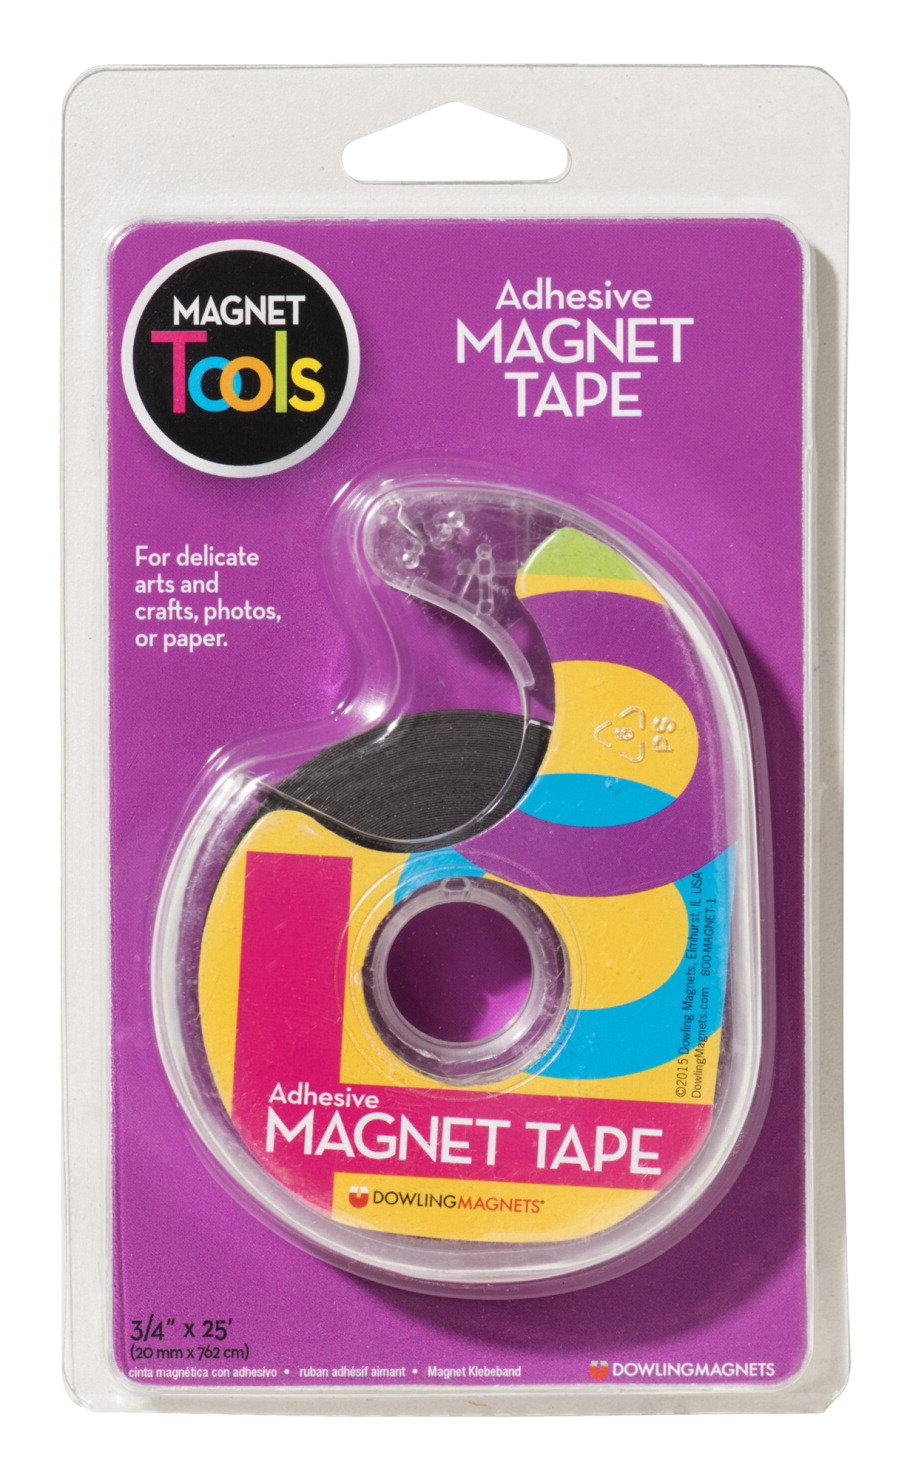 Dowling magnets adhesive extra thin magnetic tape with for Thin magnets for crafts